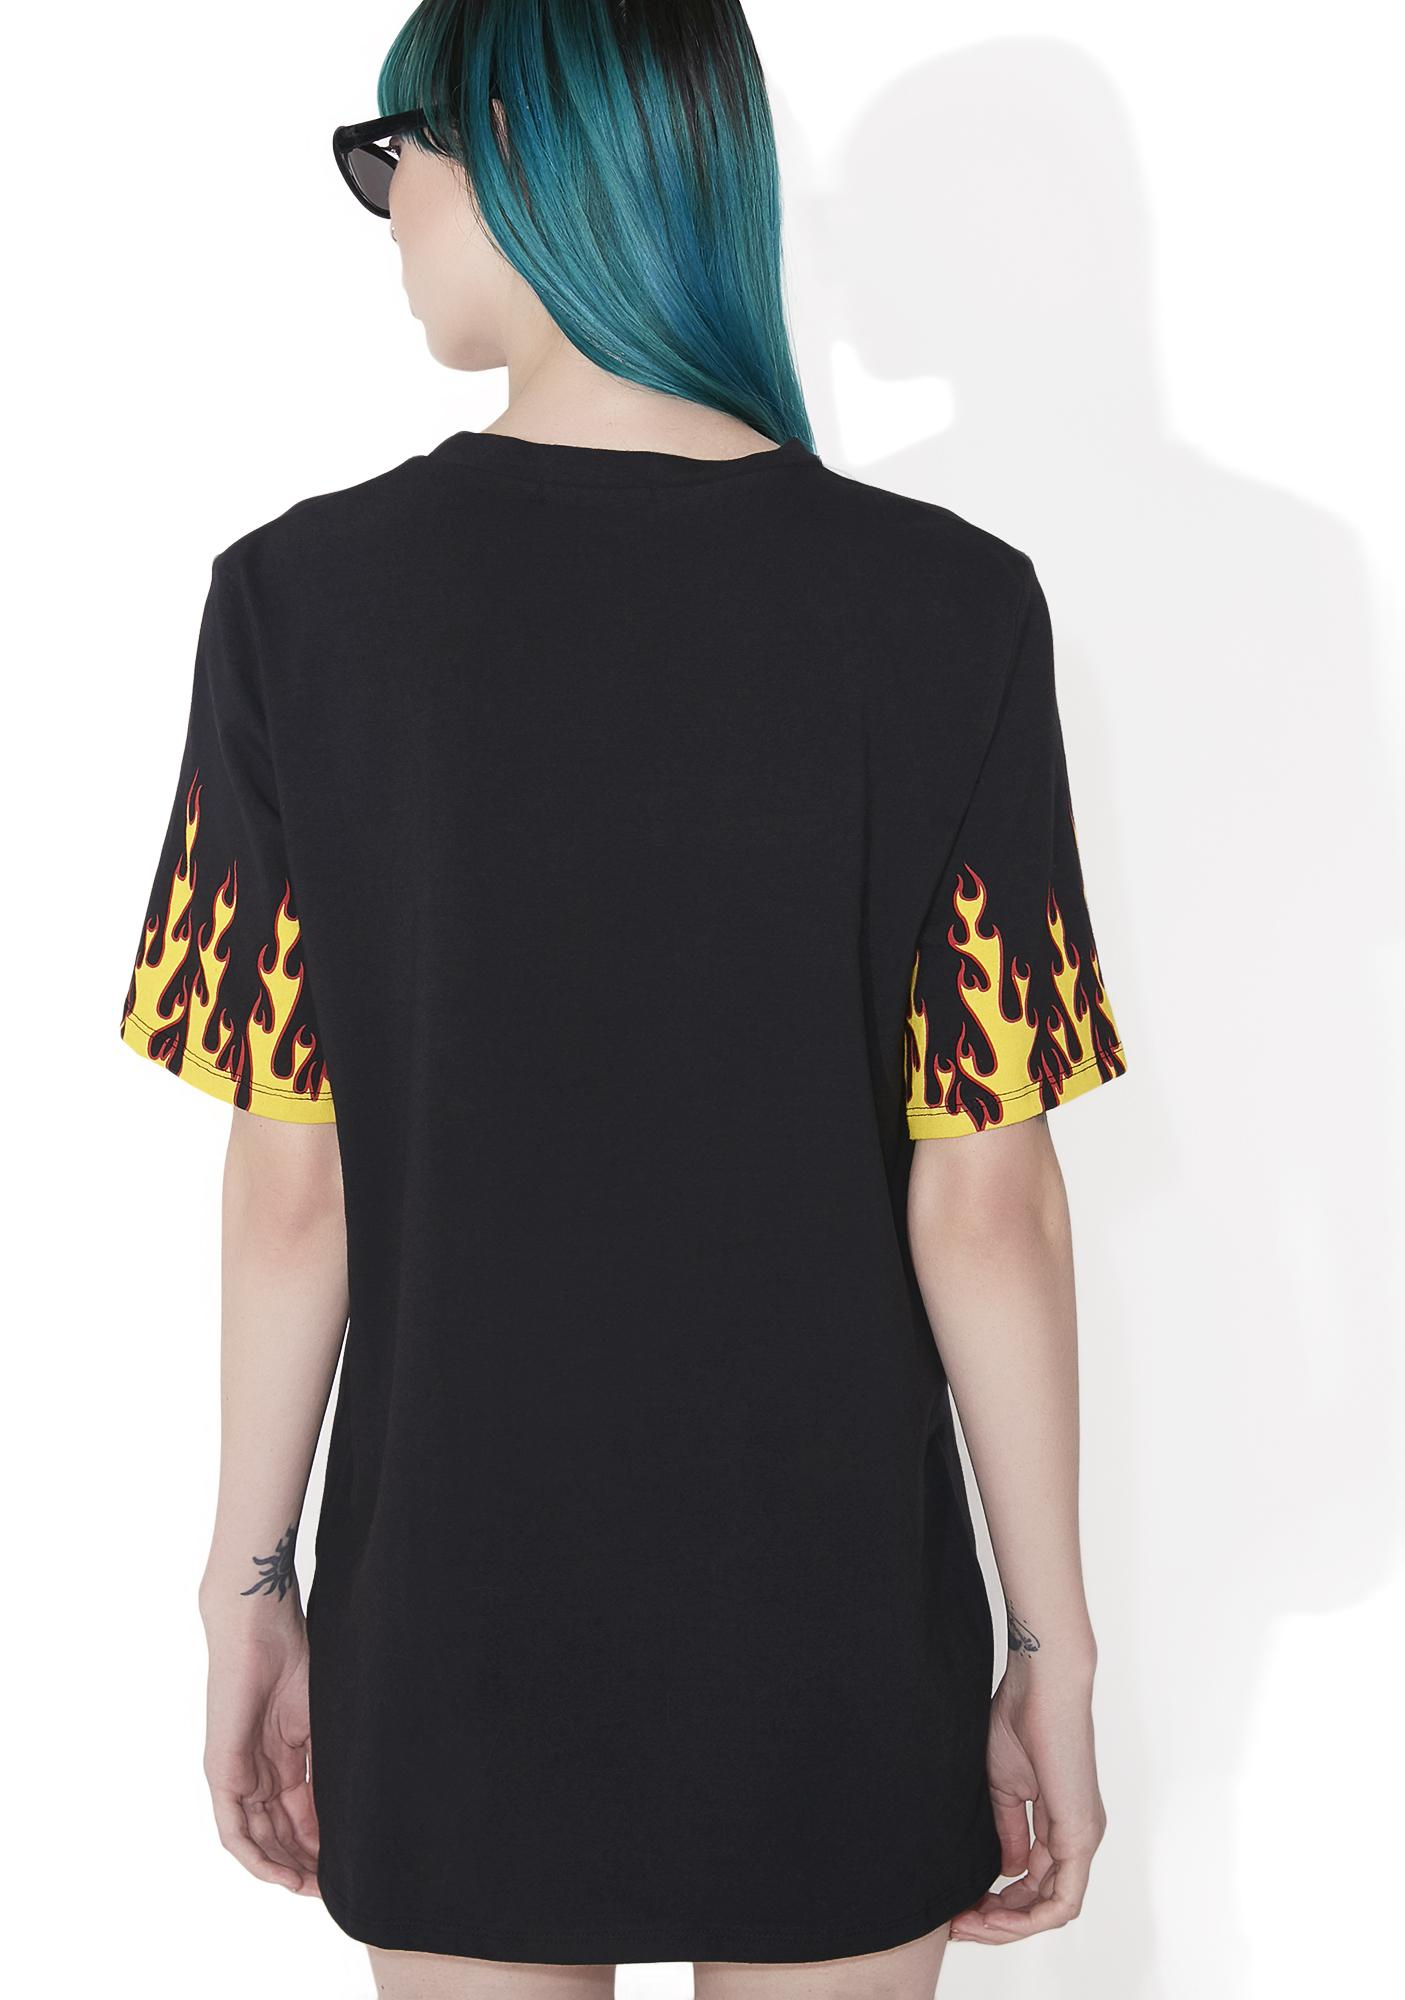 Gettin' Lit Graphic Tee